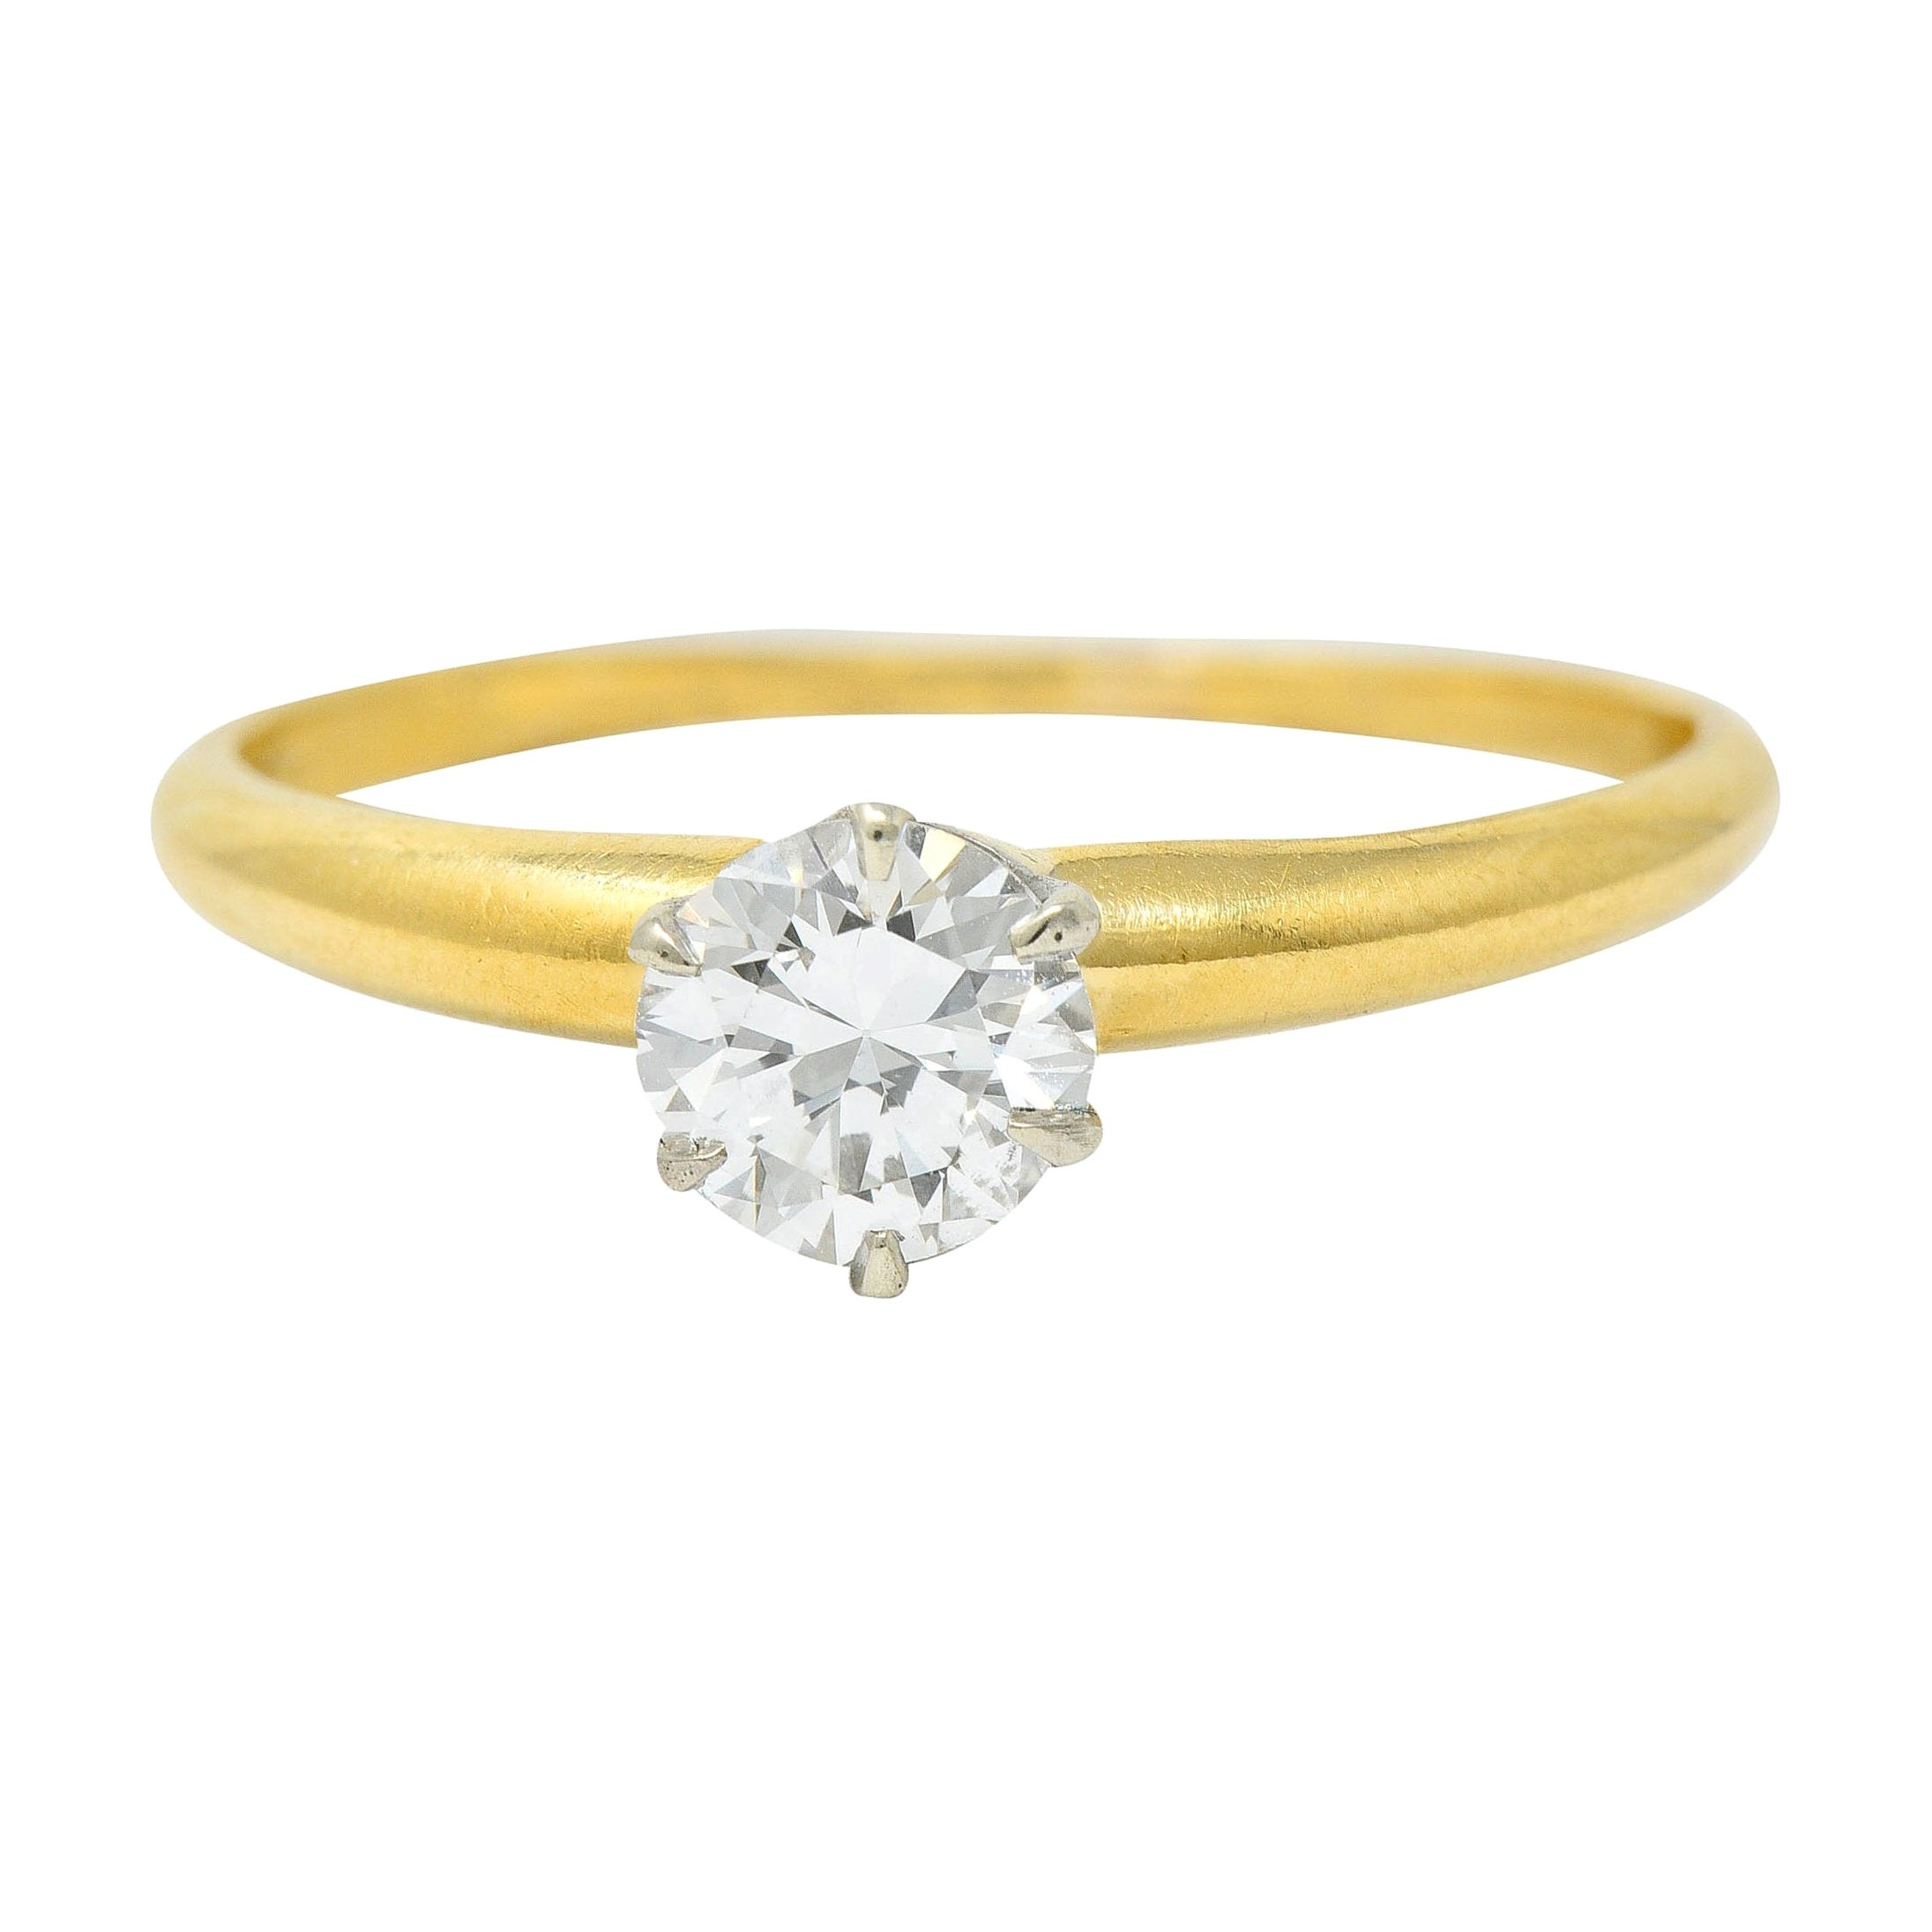 Tiffany & Co. 0.50 Carat Diamond 14 Karat Gold Solitaire Engagement Ring